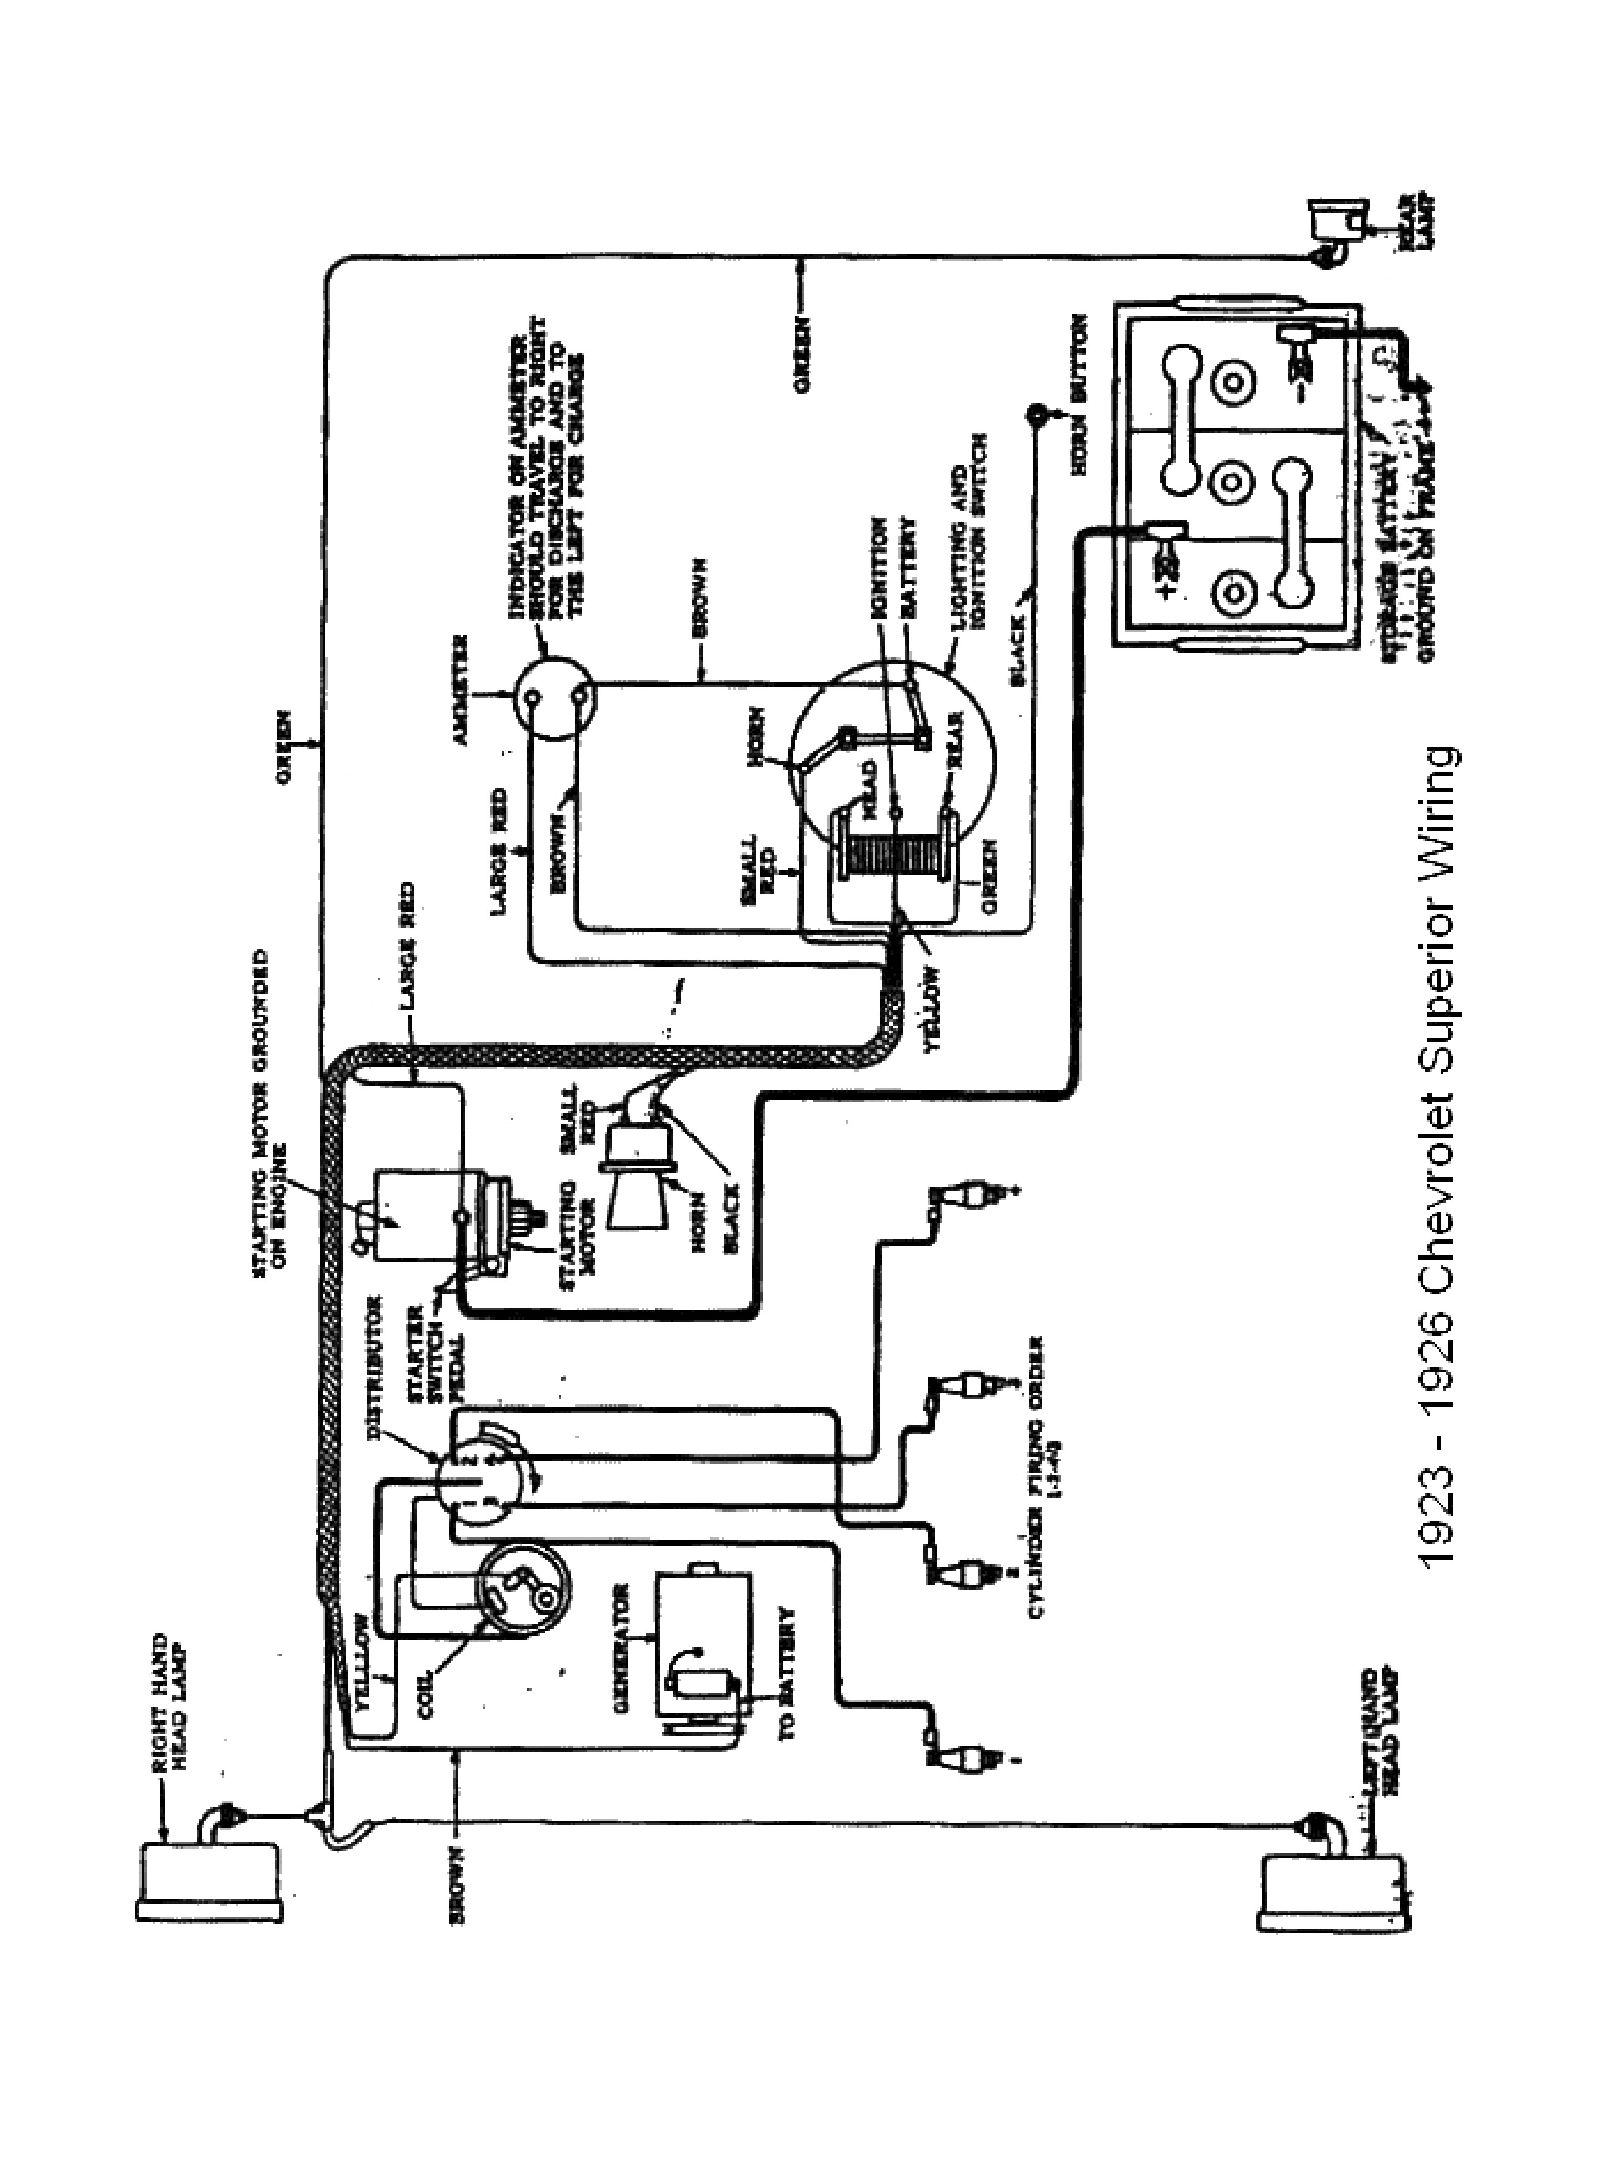 1923 26superior chevy wiring diagrams,Chevy Truck Wiring